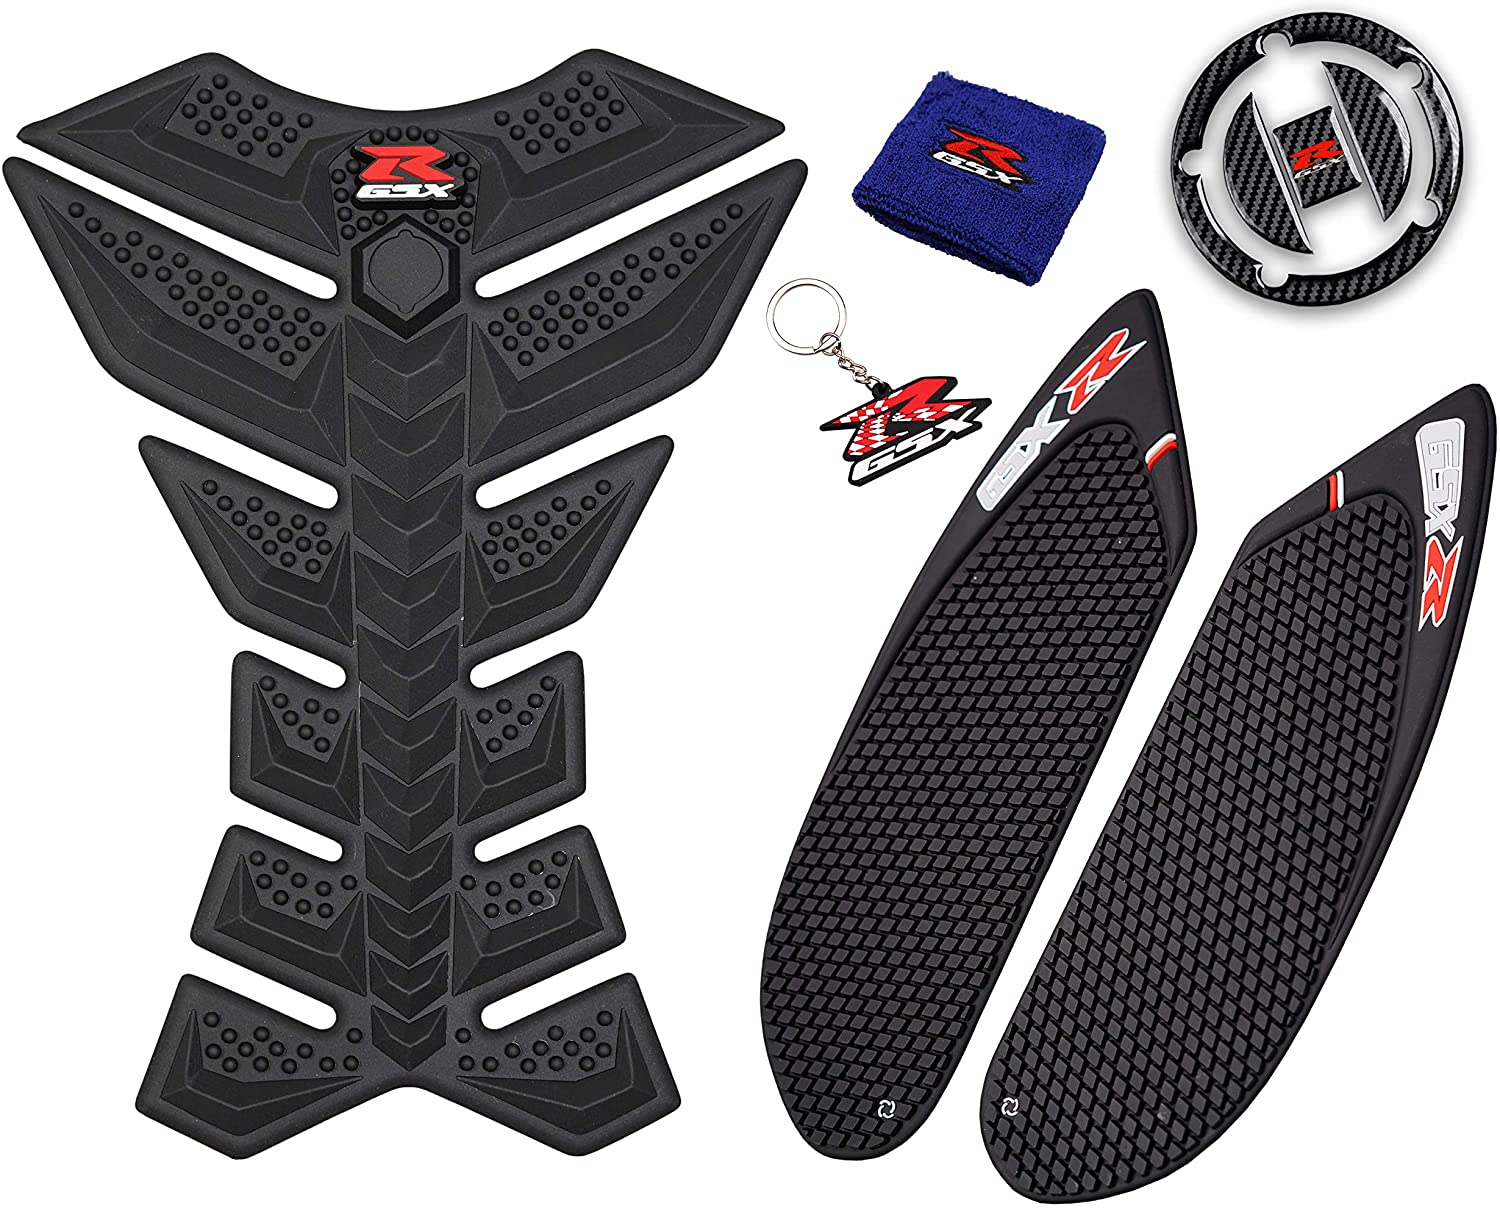 REVSOSTAR 3D Black Rubber Side Tank Pad Protector, Anti Slip sticker, Tank Side Traction Pad, Gas Cap, Fuel Cap Decal,Tank Protector for GSXR 600 750 (2006 2007)